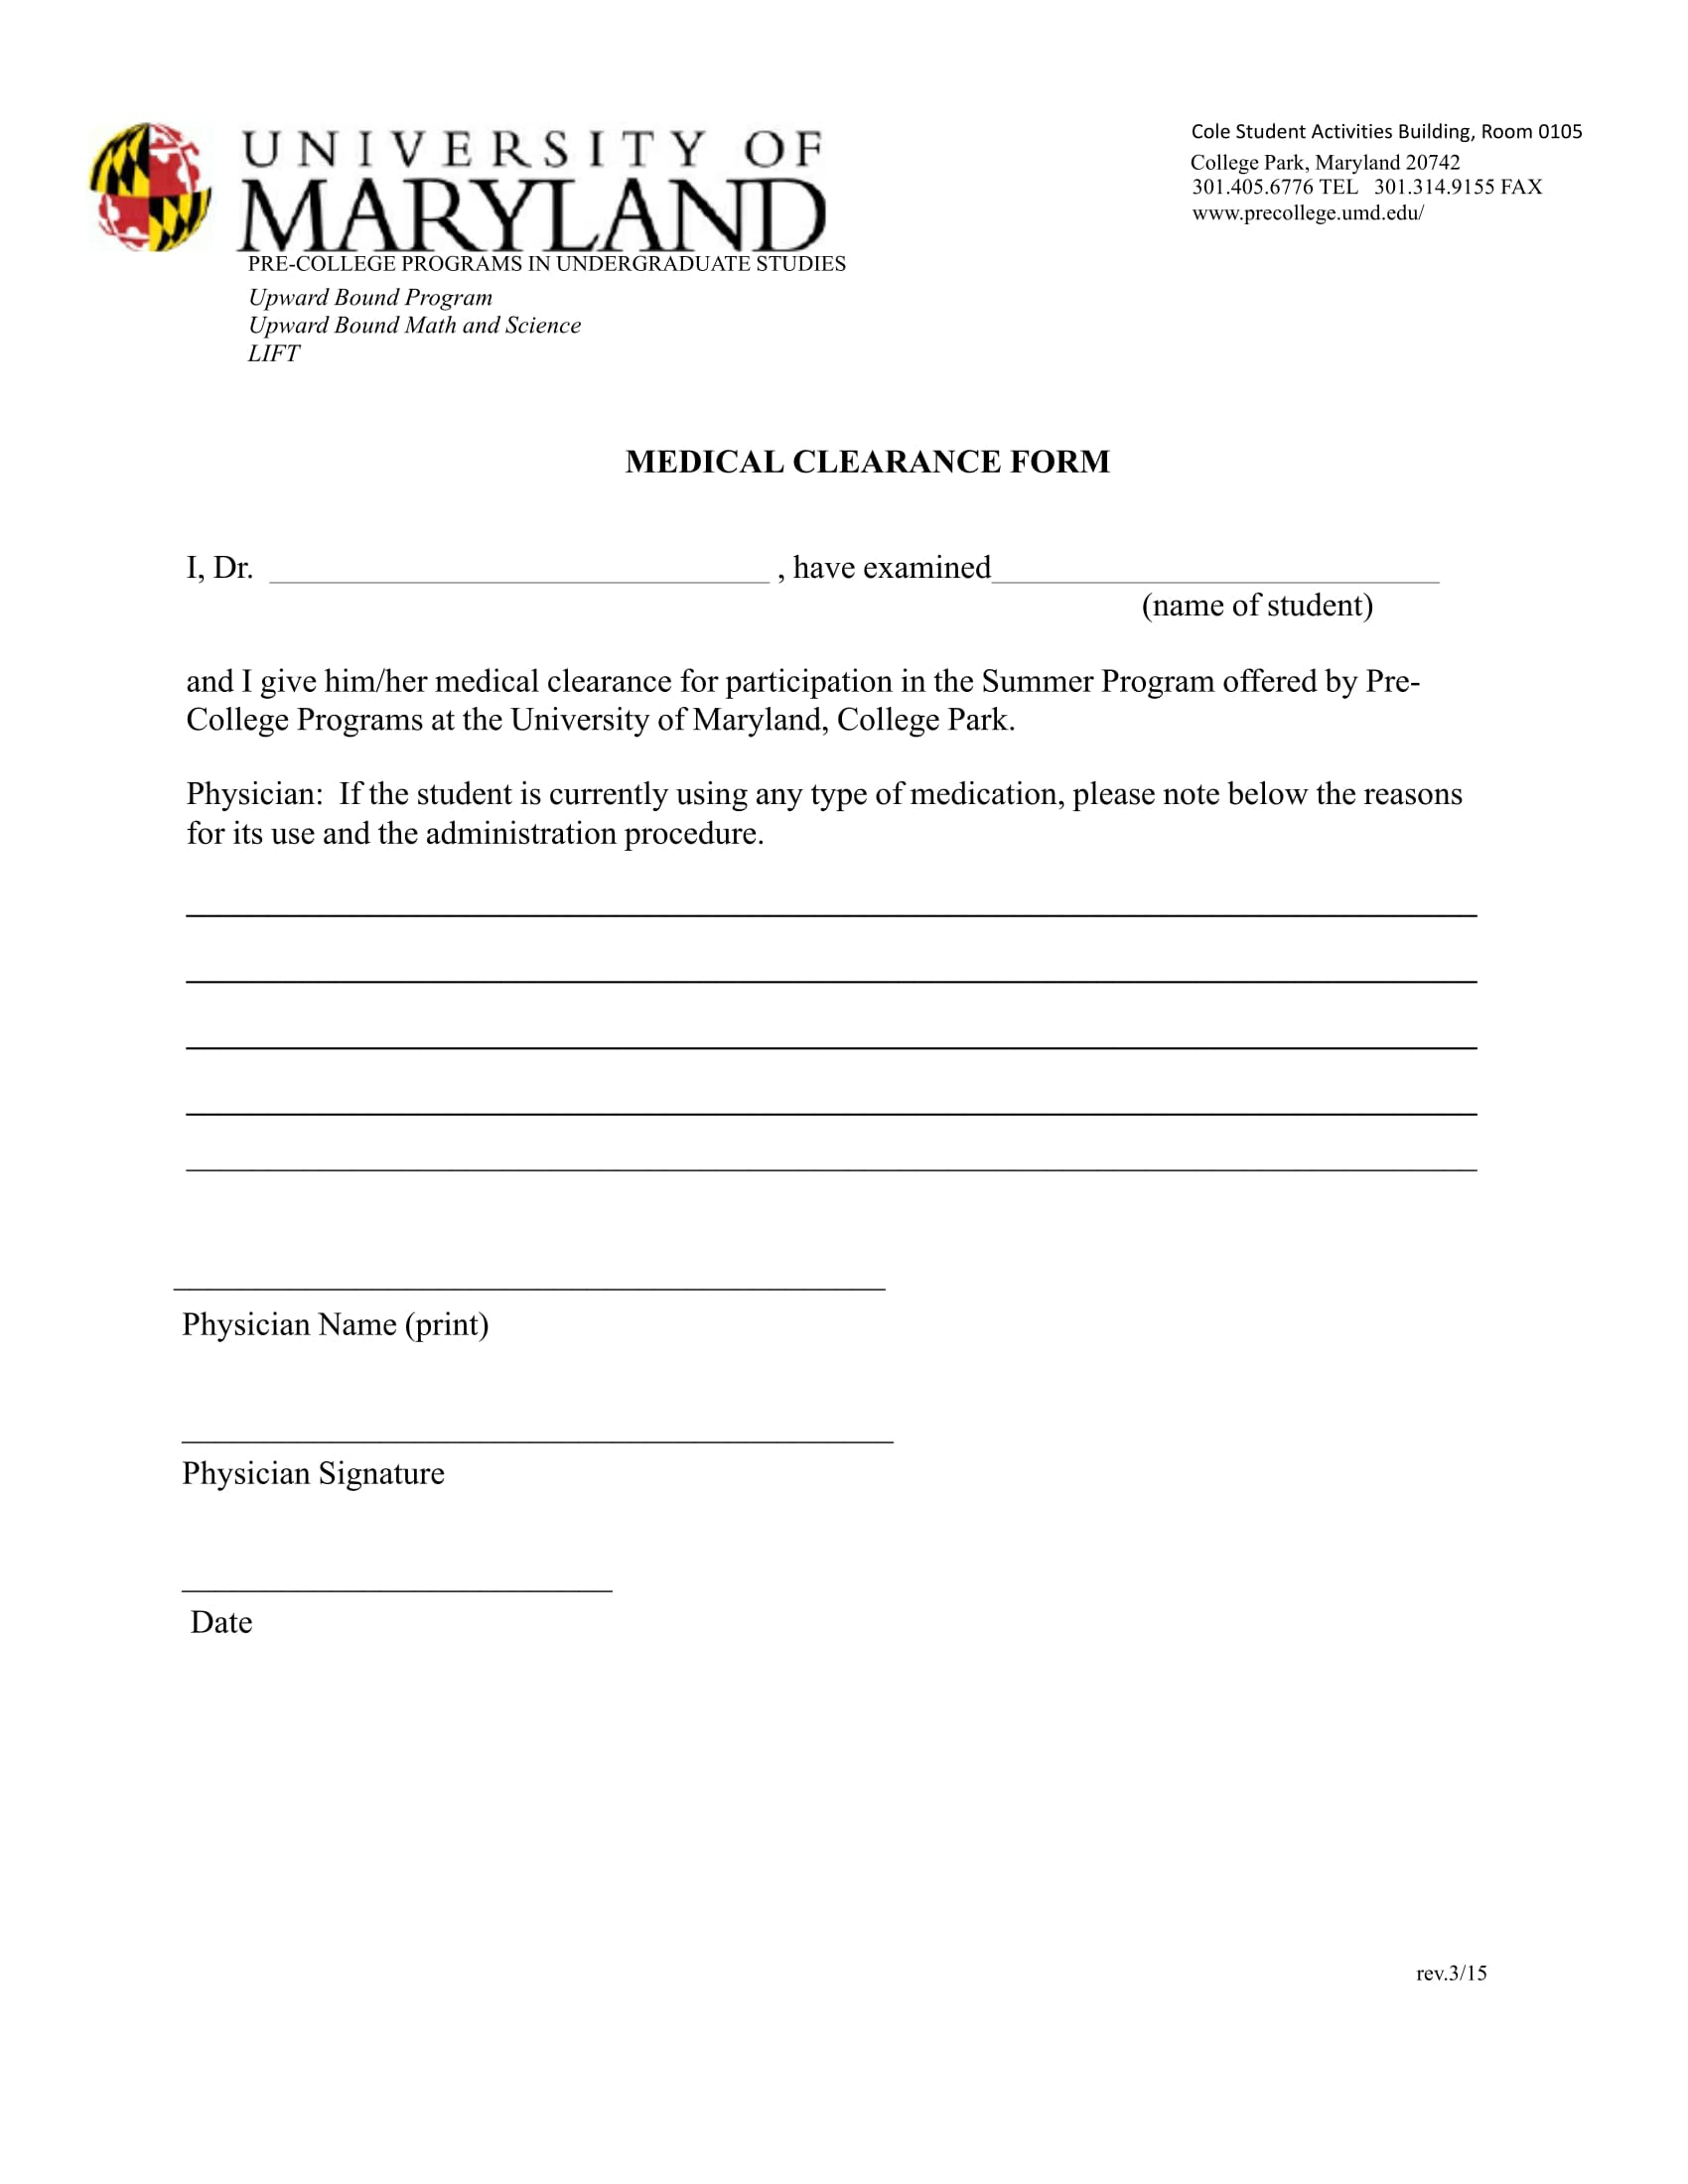 Beautiful Sample Medical Clearance Form Ideas - Resume Samples ...